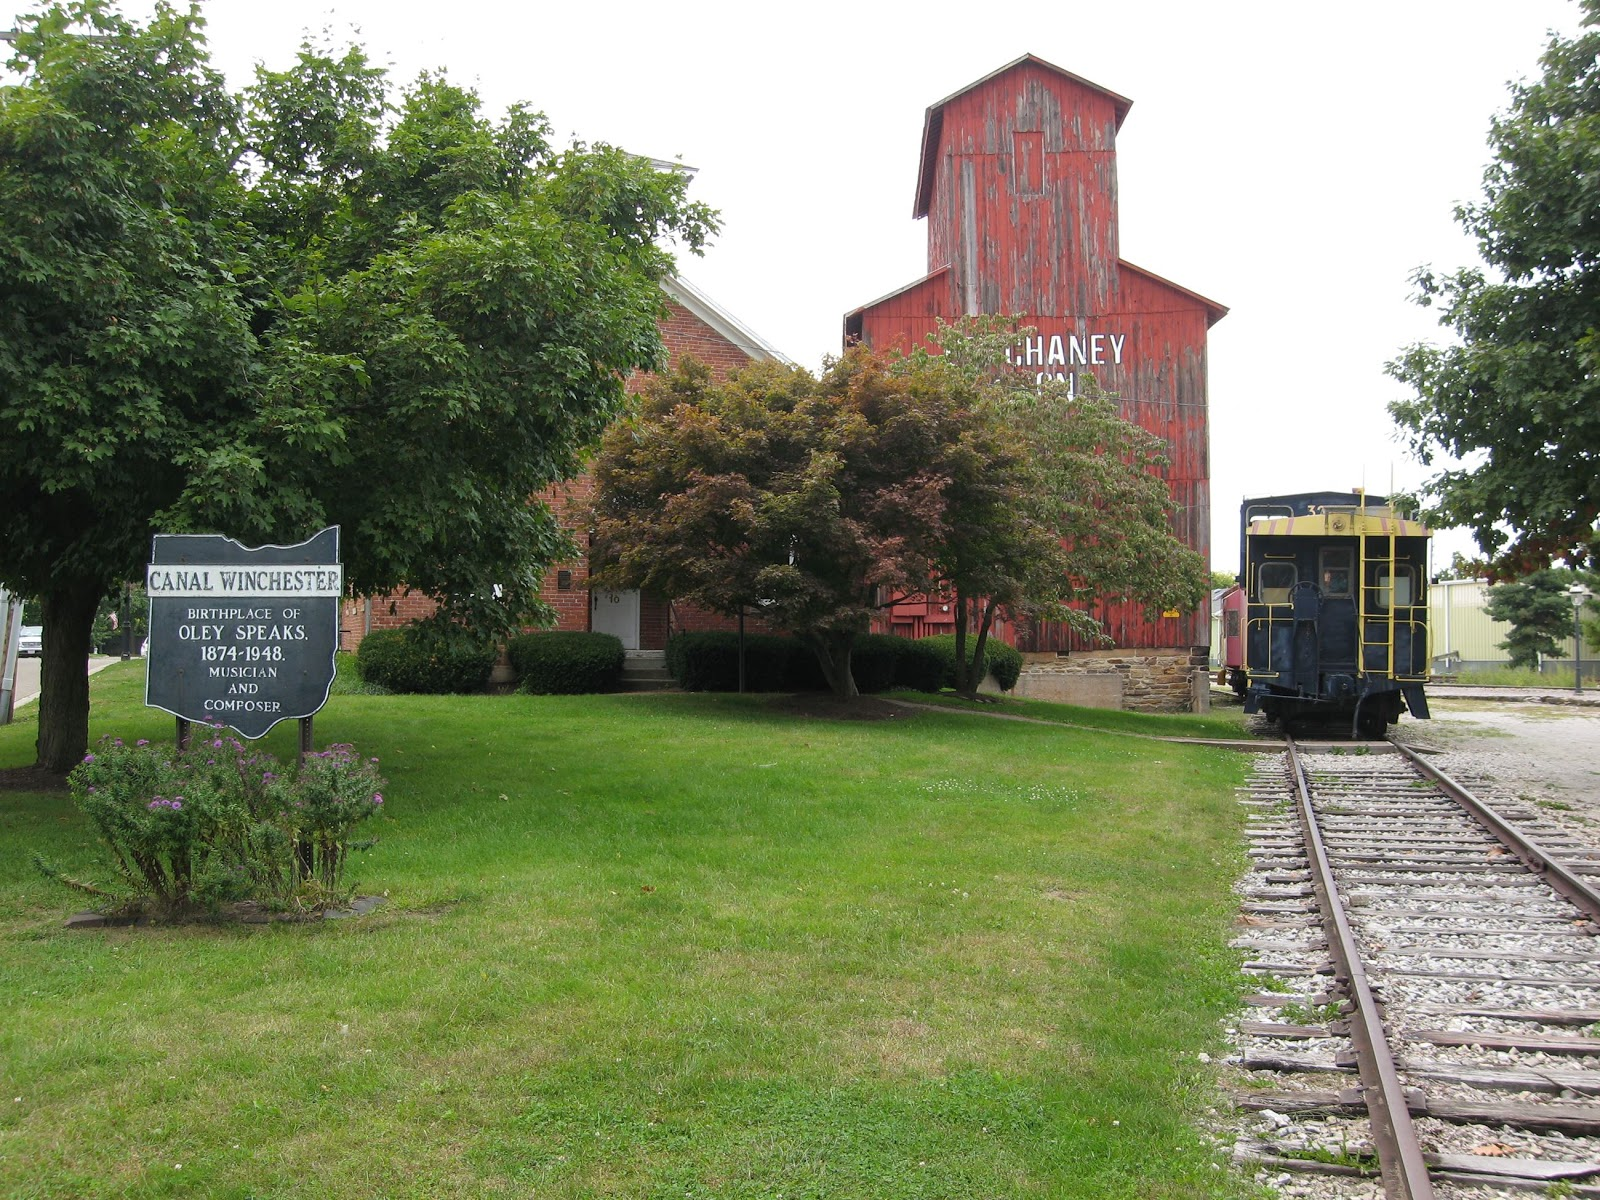 A sign for Canal Winchester, Ohio in front of an old barn and train tracks.